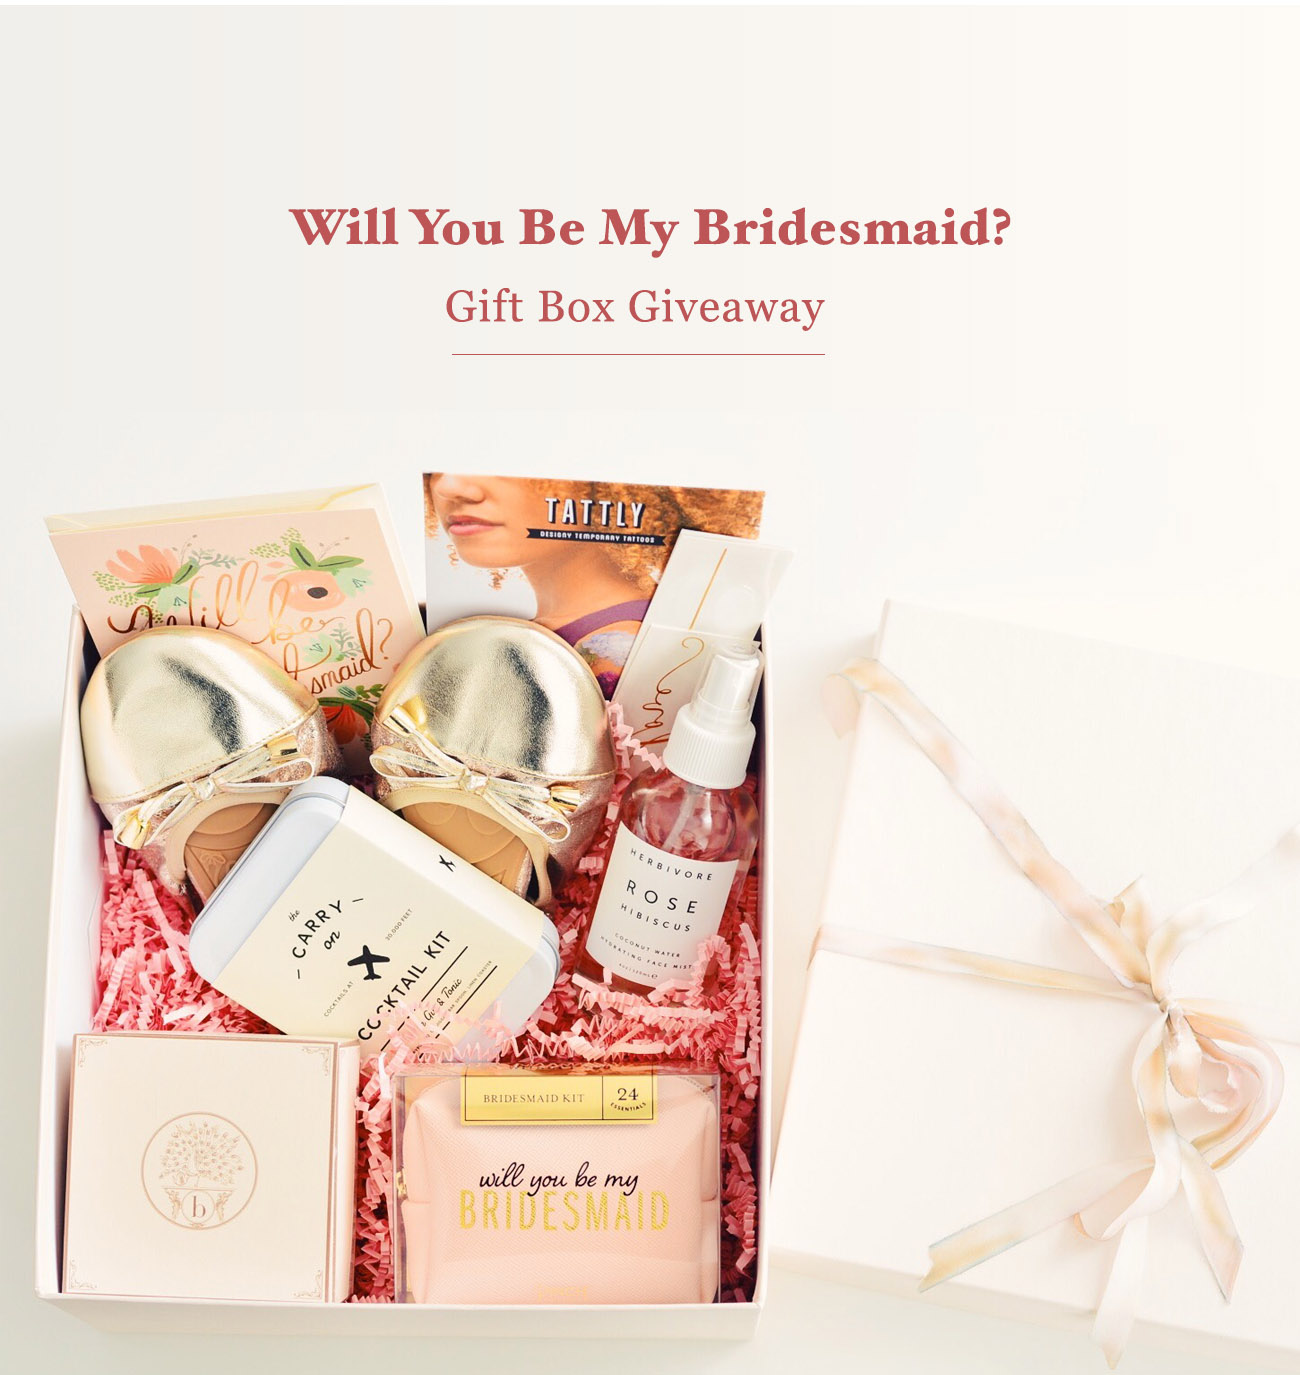 Bridesmaid Gift Box Giveaway from Bijou Candles